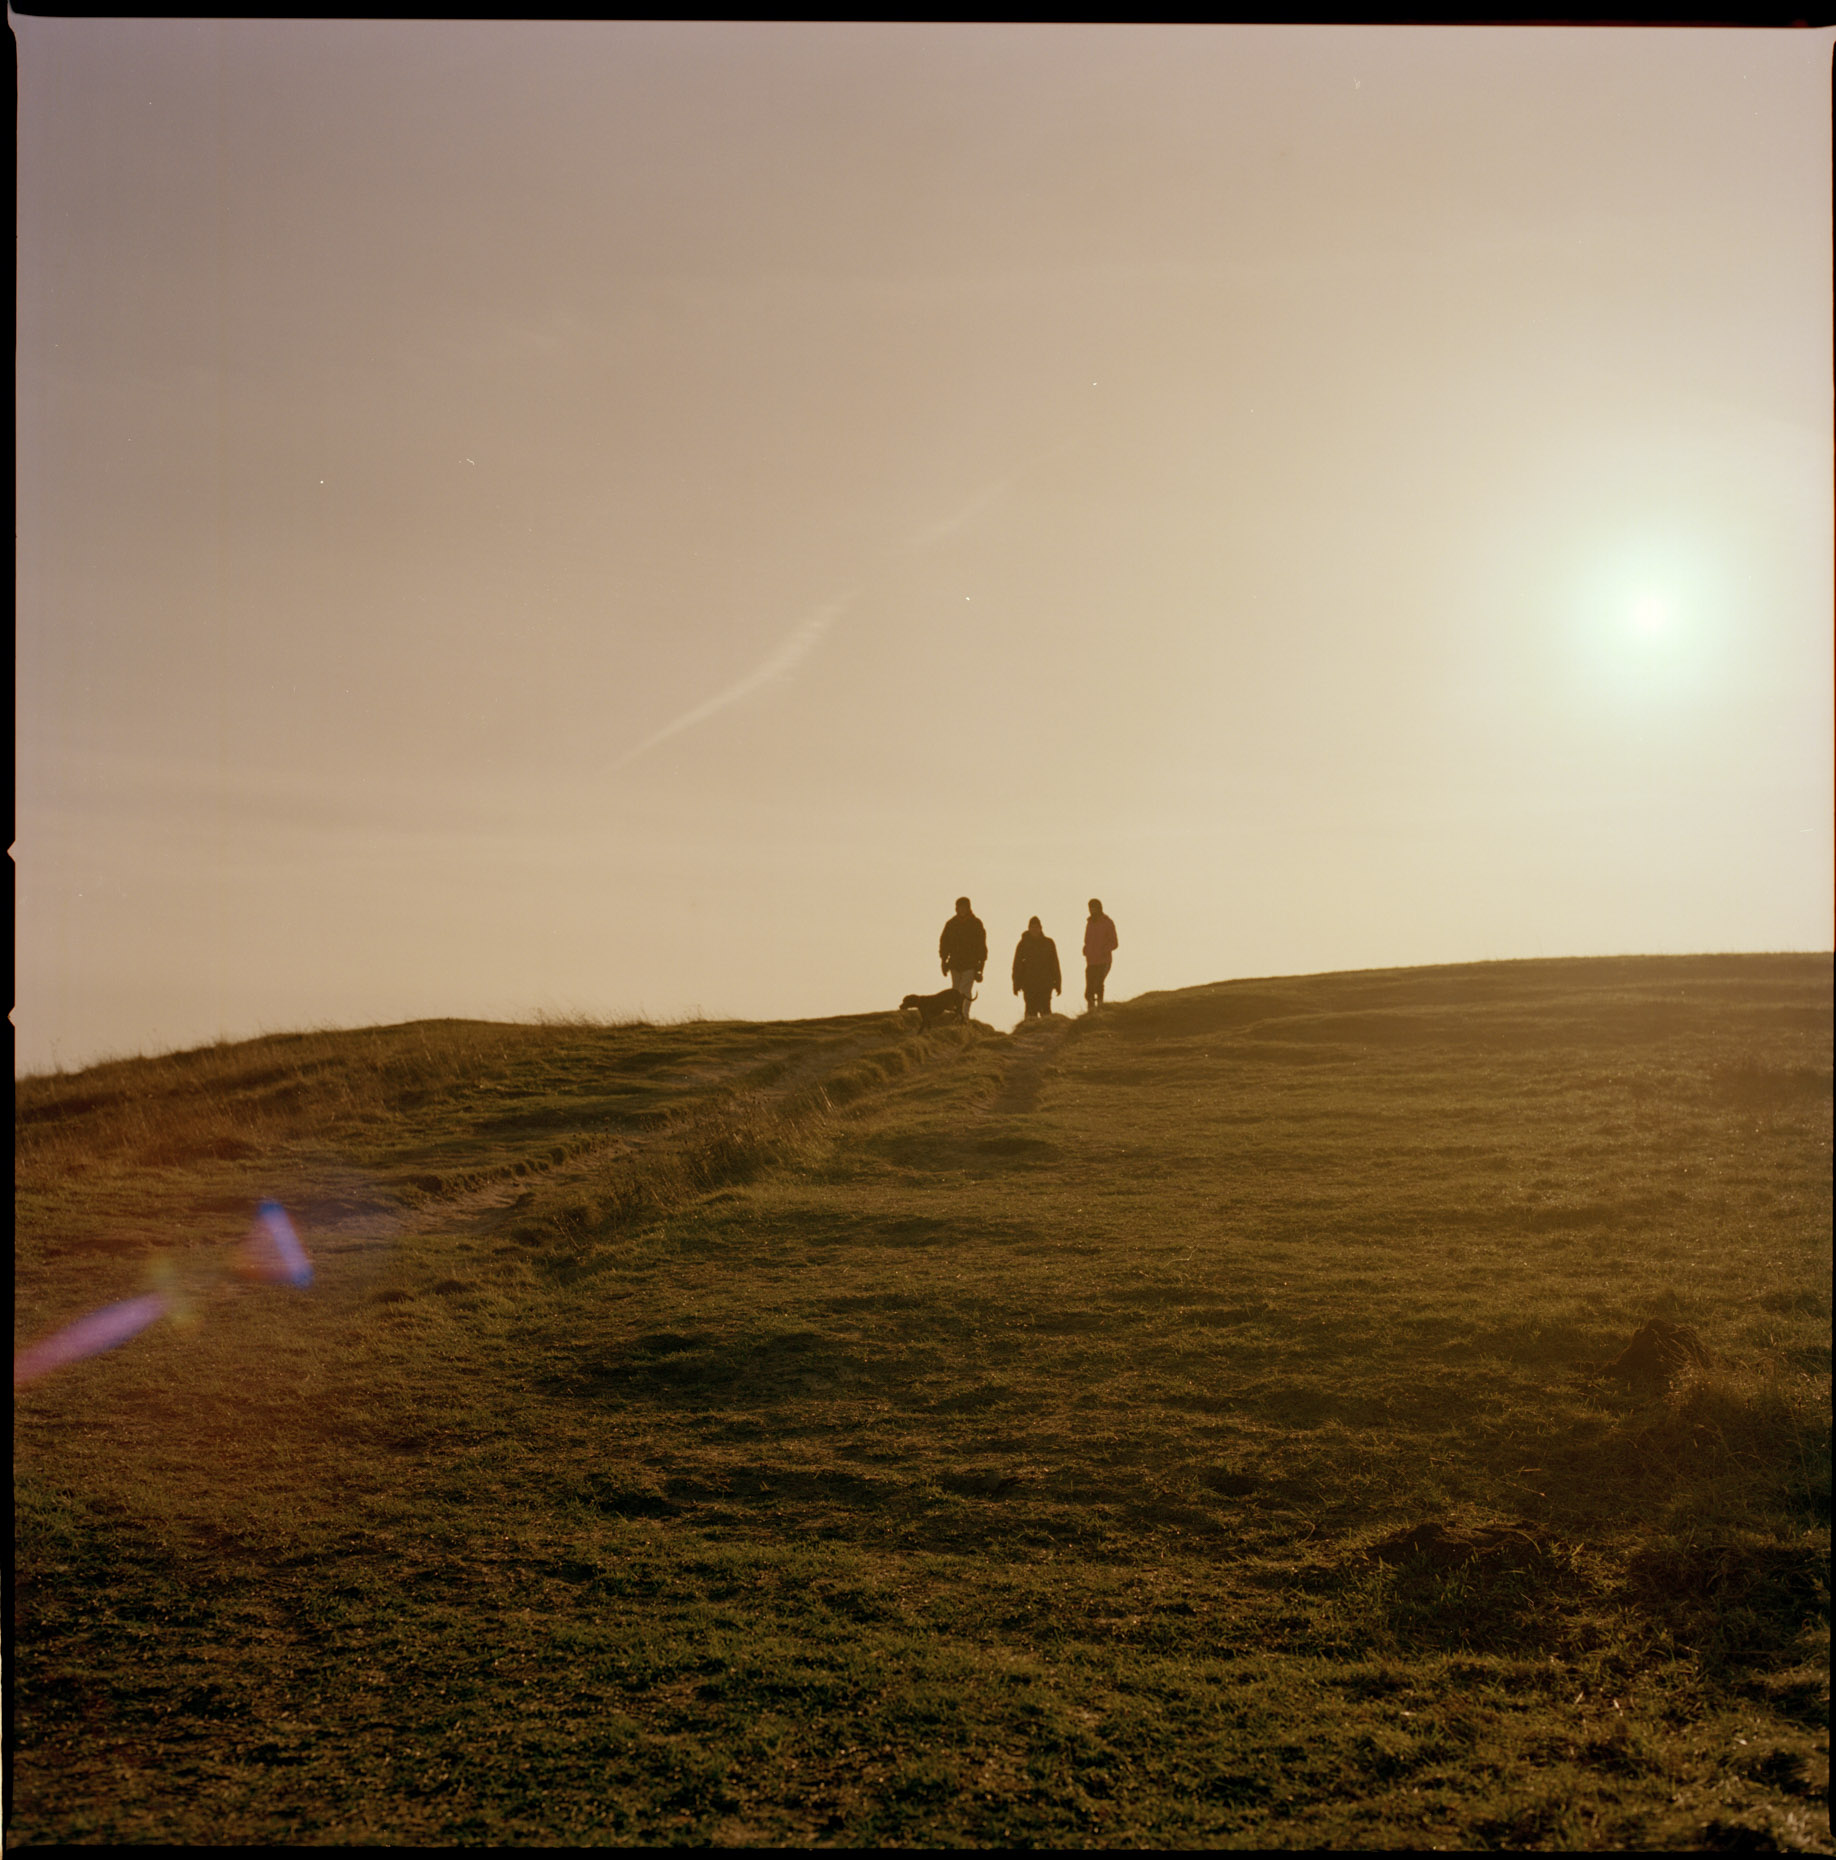 Ramblers bask in the evening sun on the grassy high hills of Ivinghoe Beacon, Buckinghamshire, England.